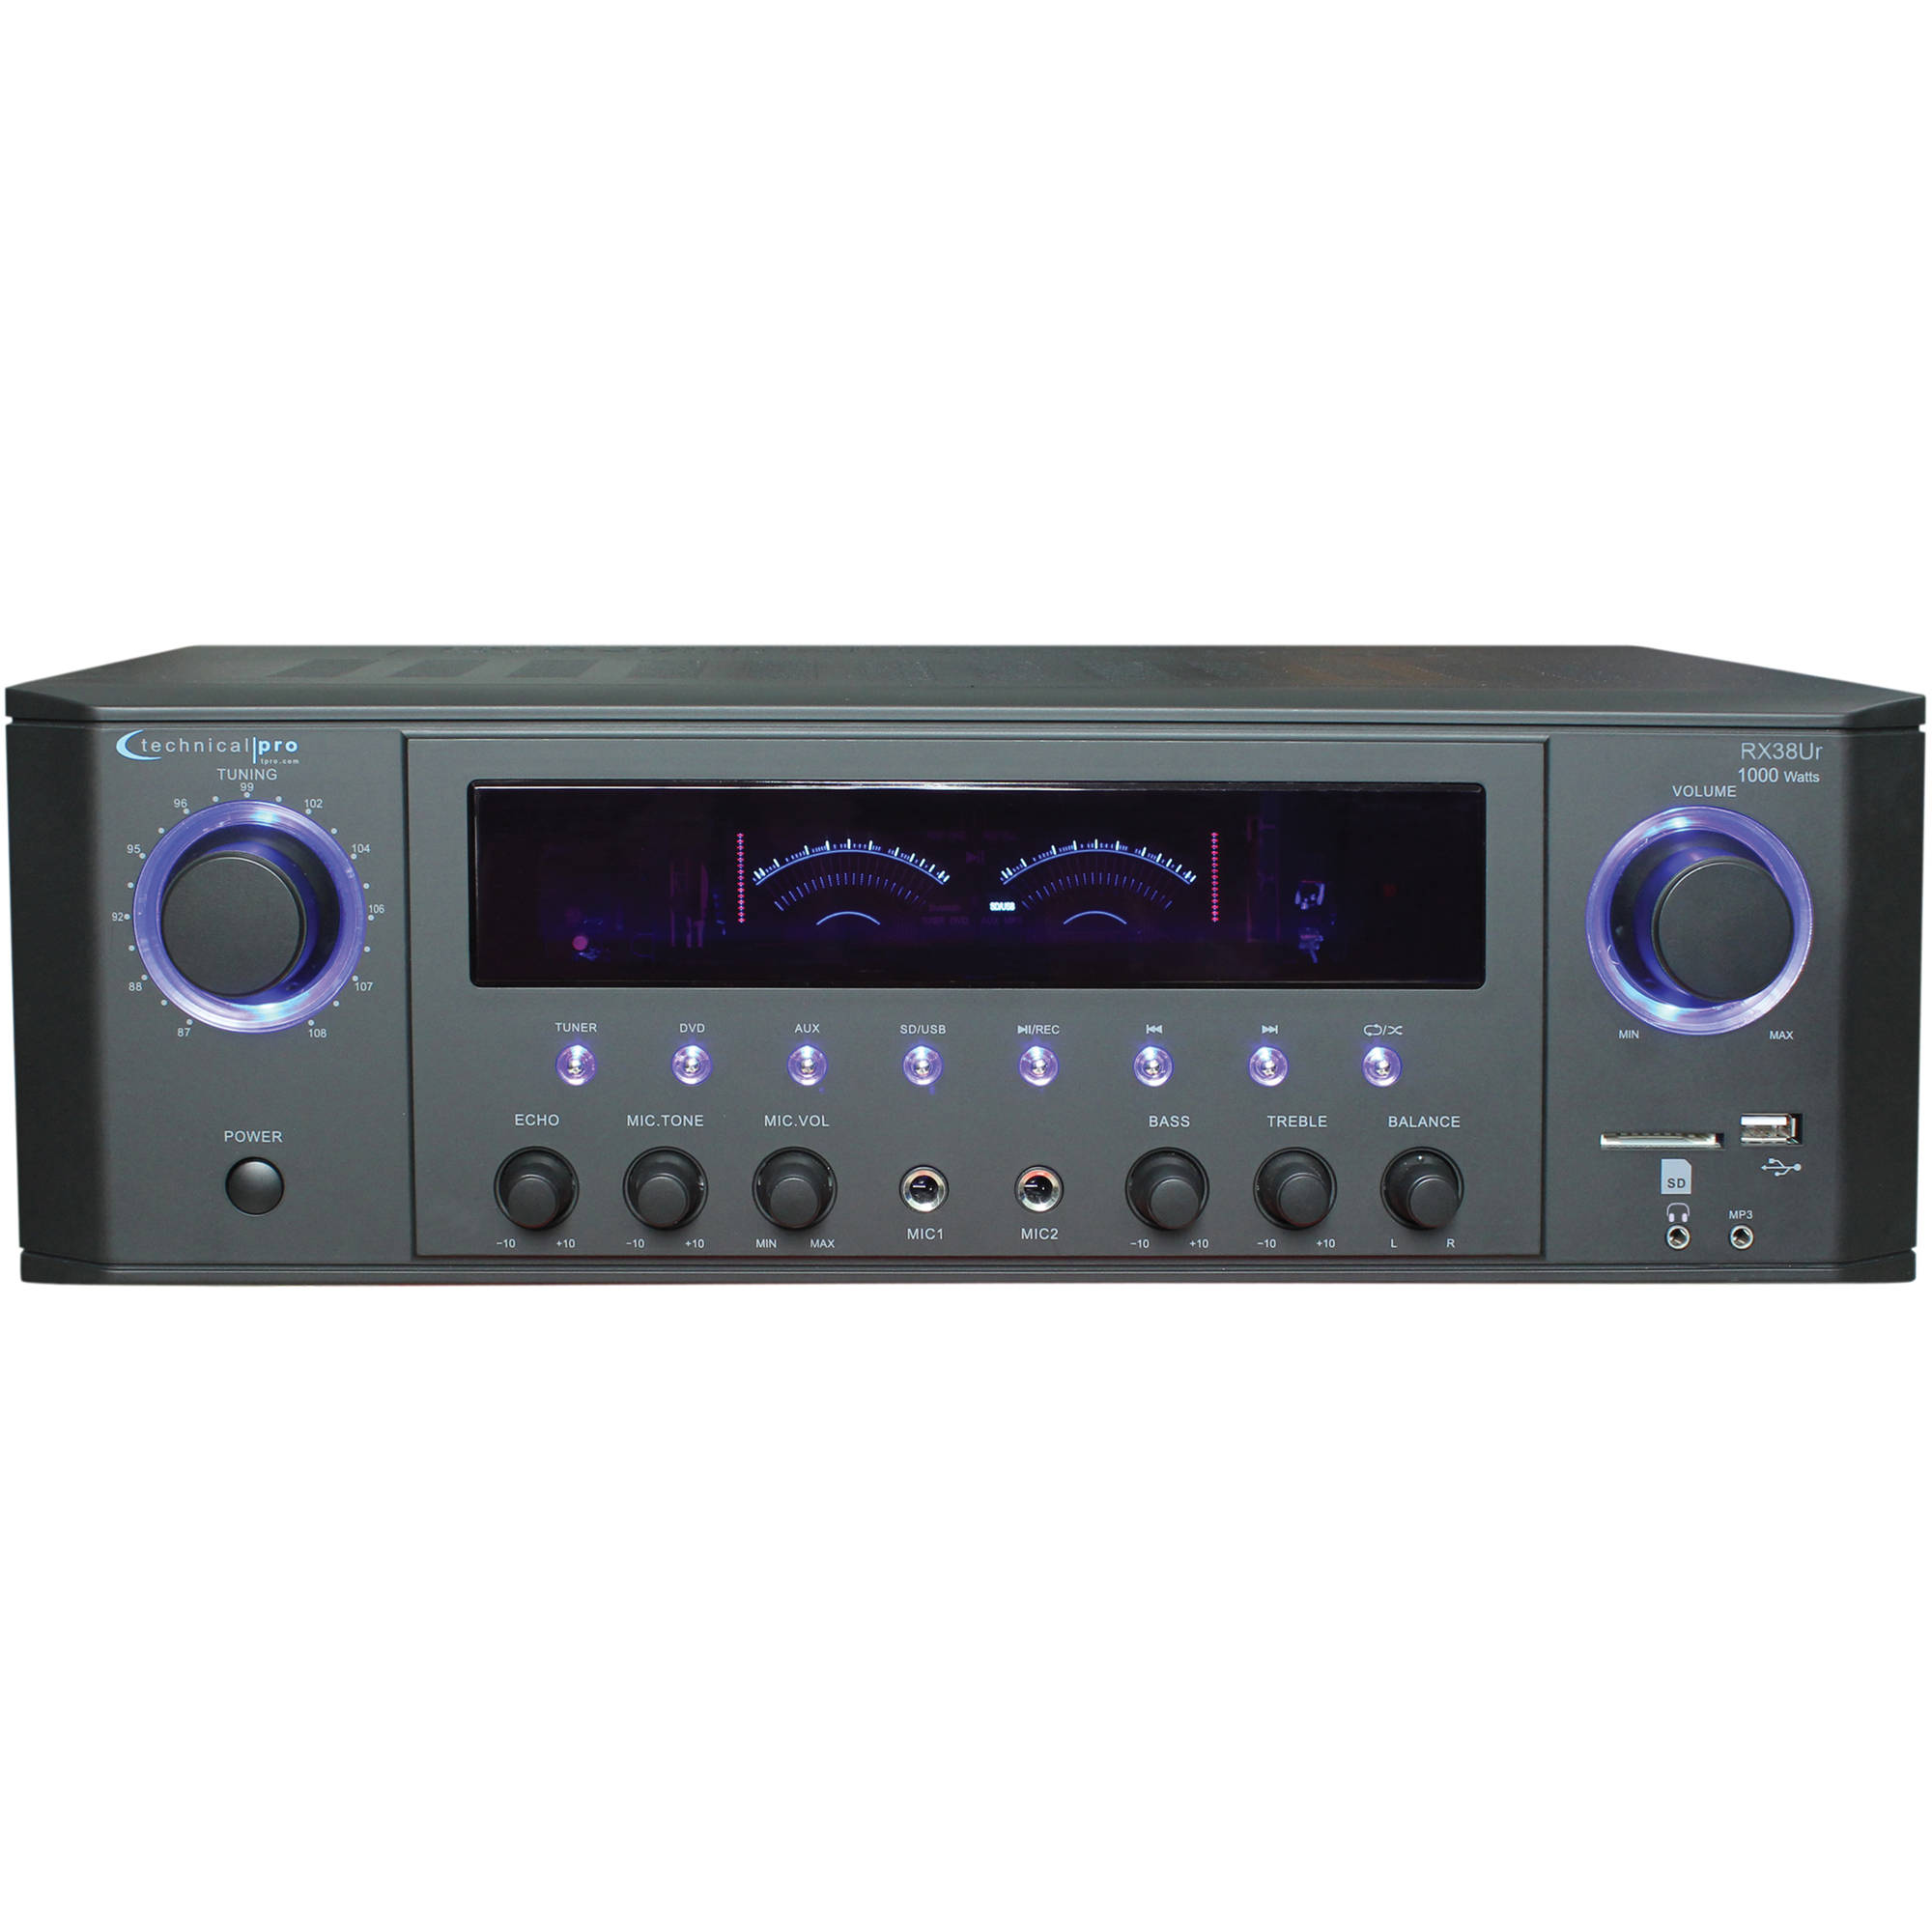 hight resolution of technical pro rx38ur professional receiver with usb sd card inputs